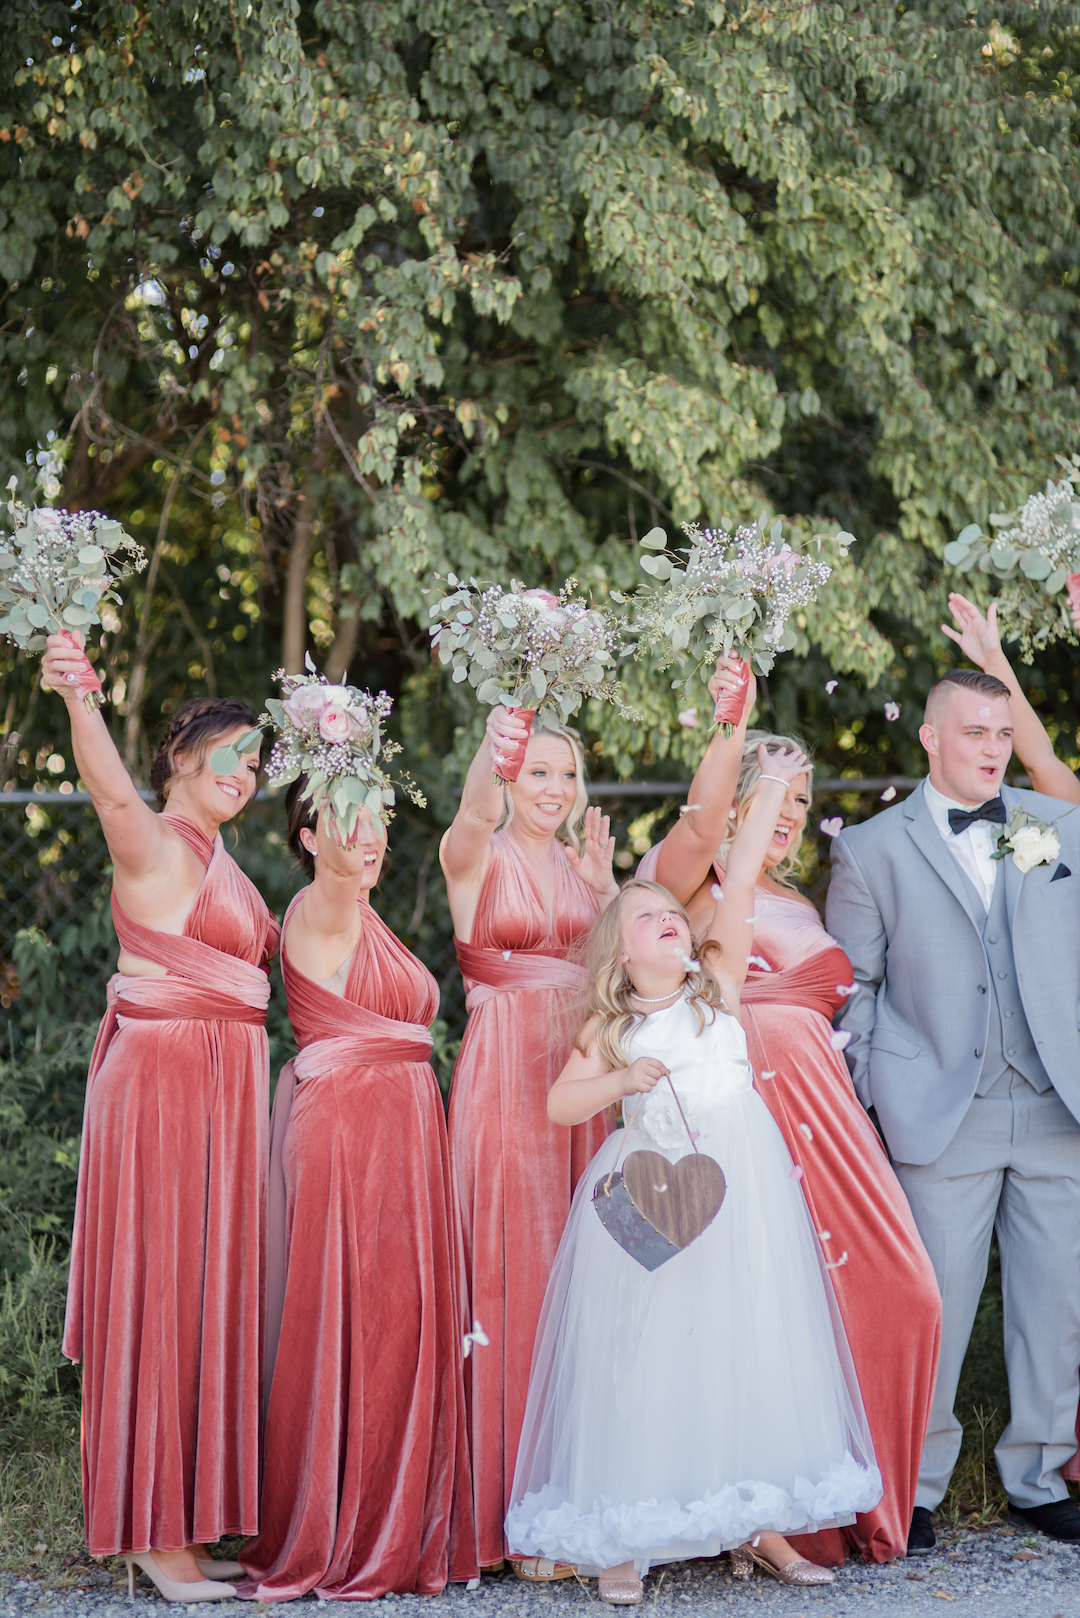 Pink Bridesmaids Dresses: Romantic Blush & Metallic Inspired Wedding featured on Nashville Bride Guide